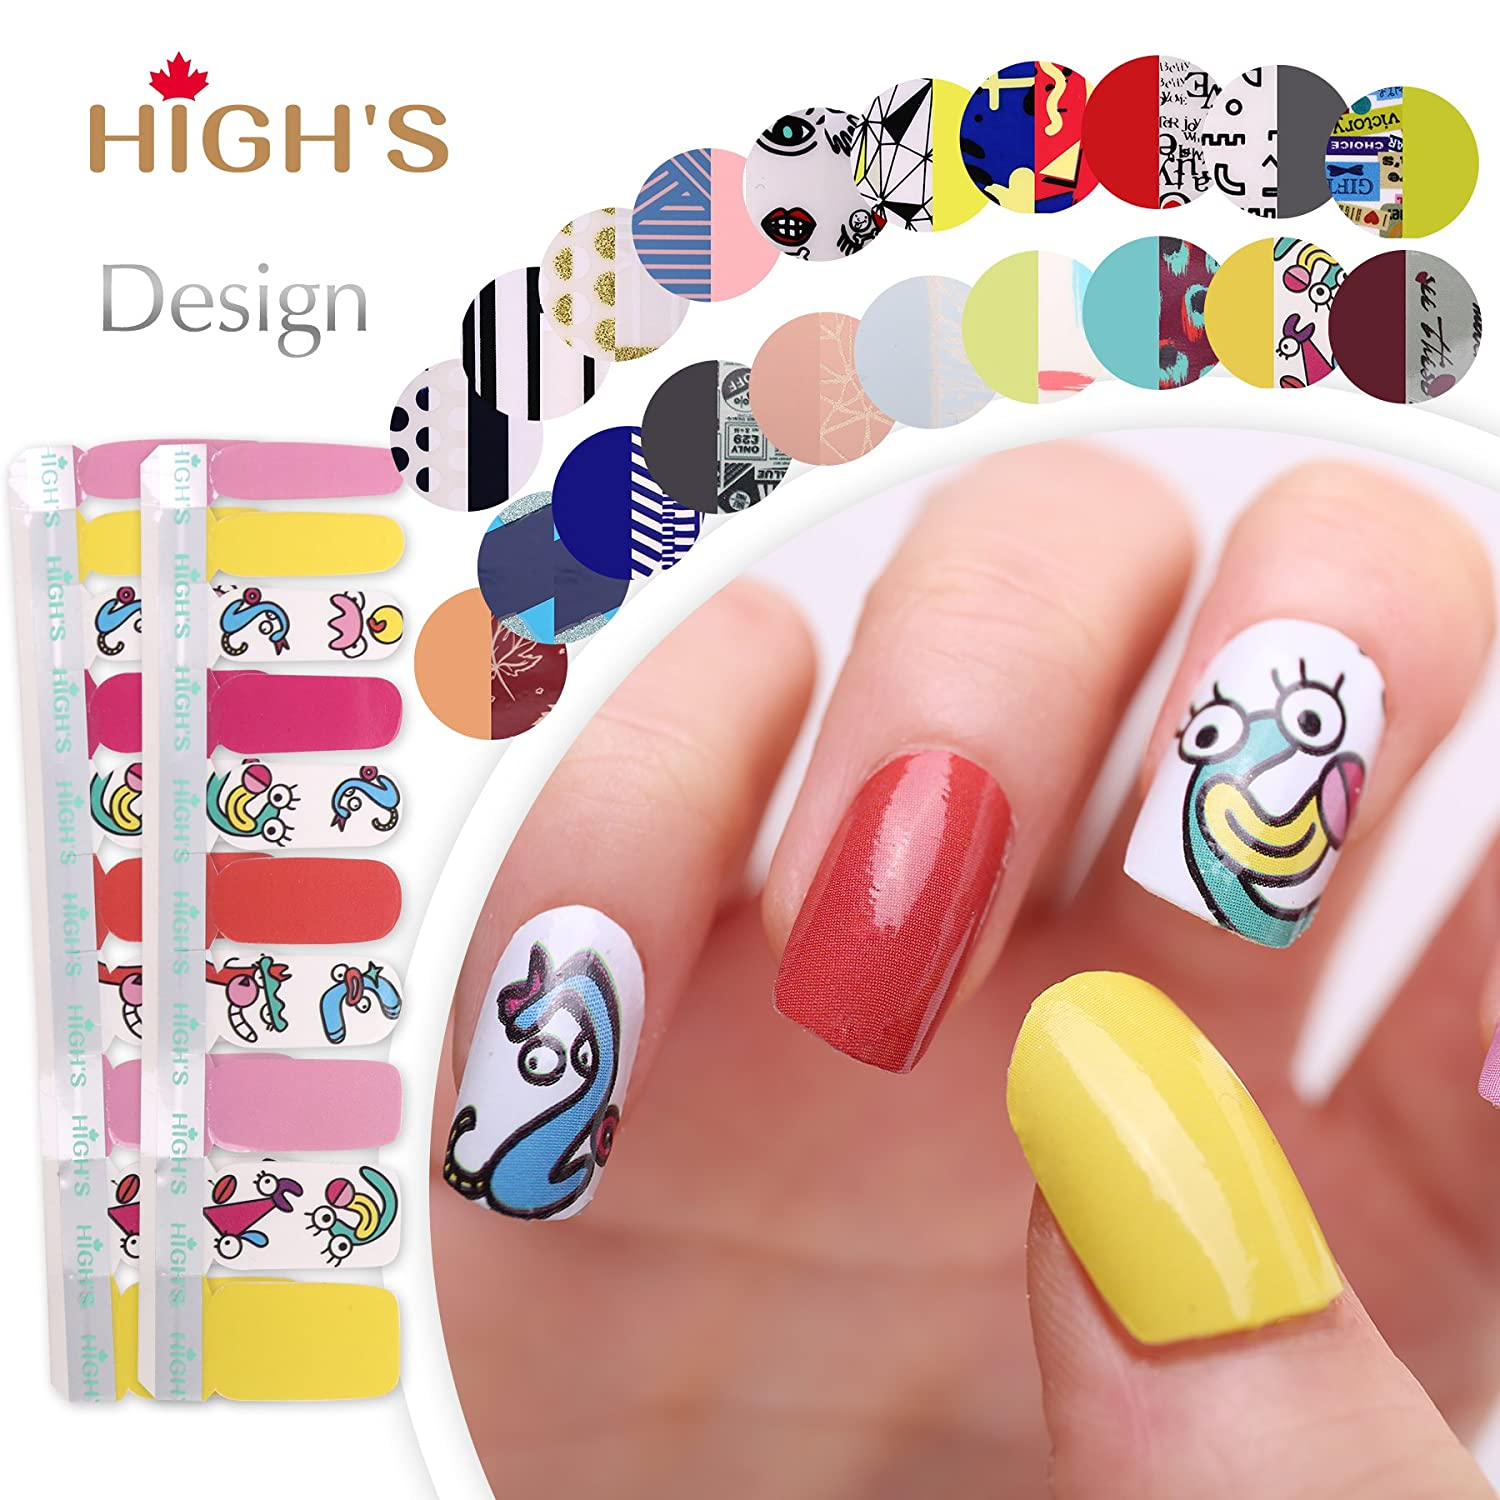 HIGH'S Exclusive Design Series Manicure Nail Polish Strips Nail Wraps, Black Friday HIGH' S